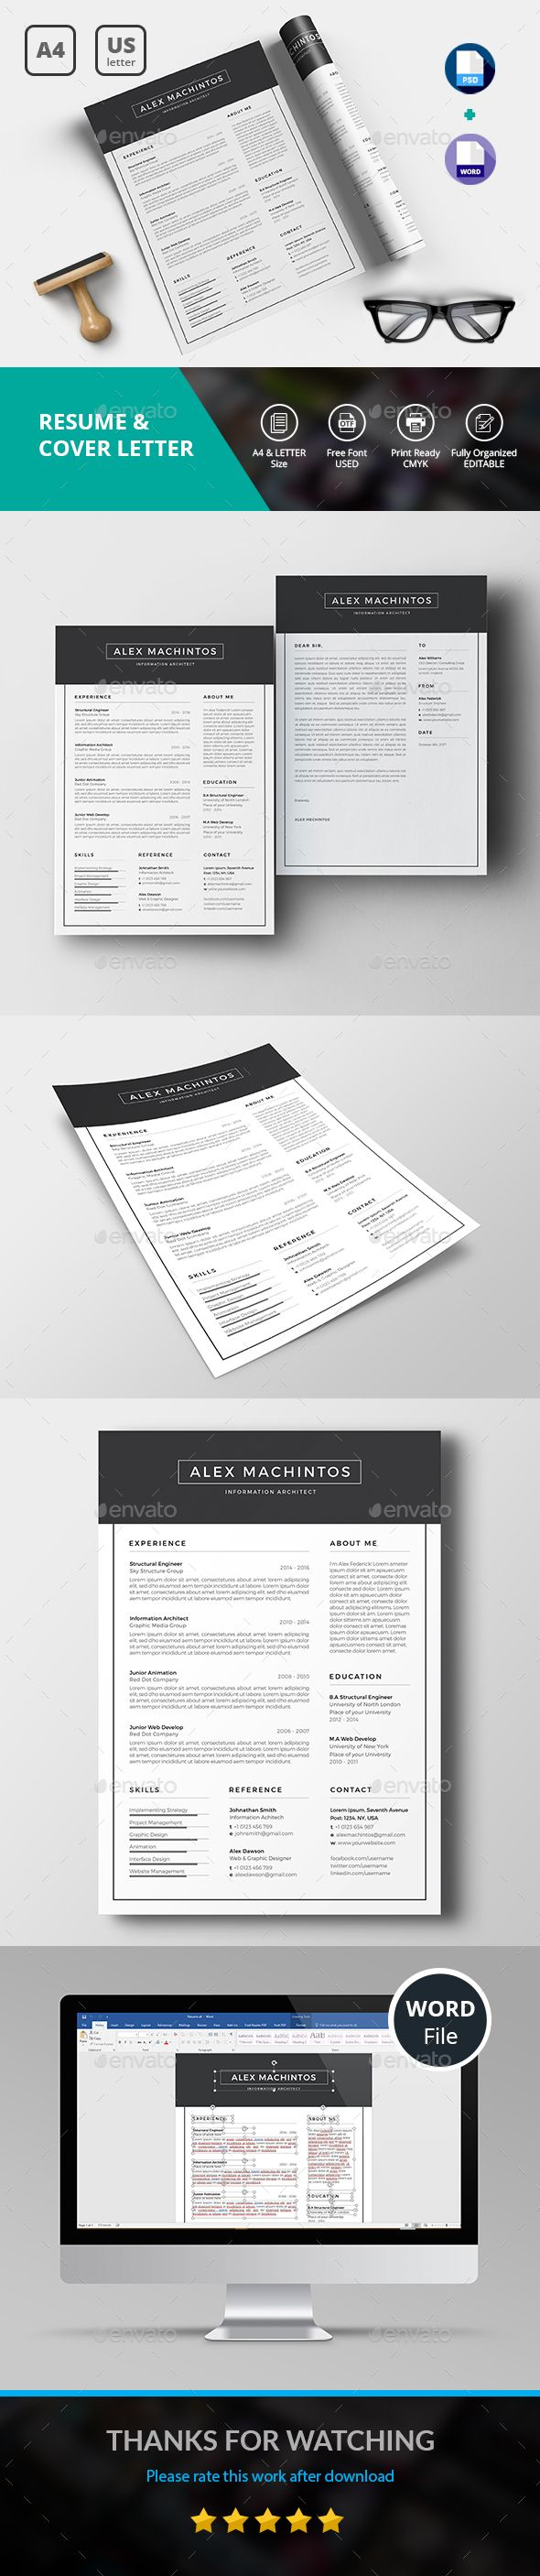 Resume/CV Template PSD, MS Word A4 and Us Letter Paper